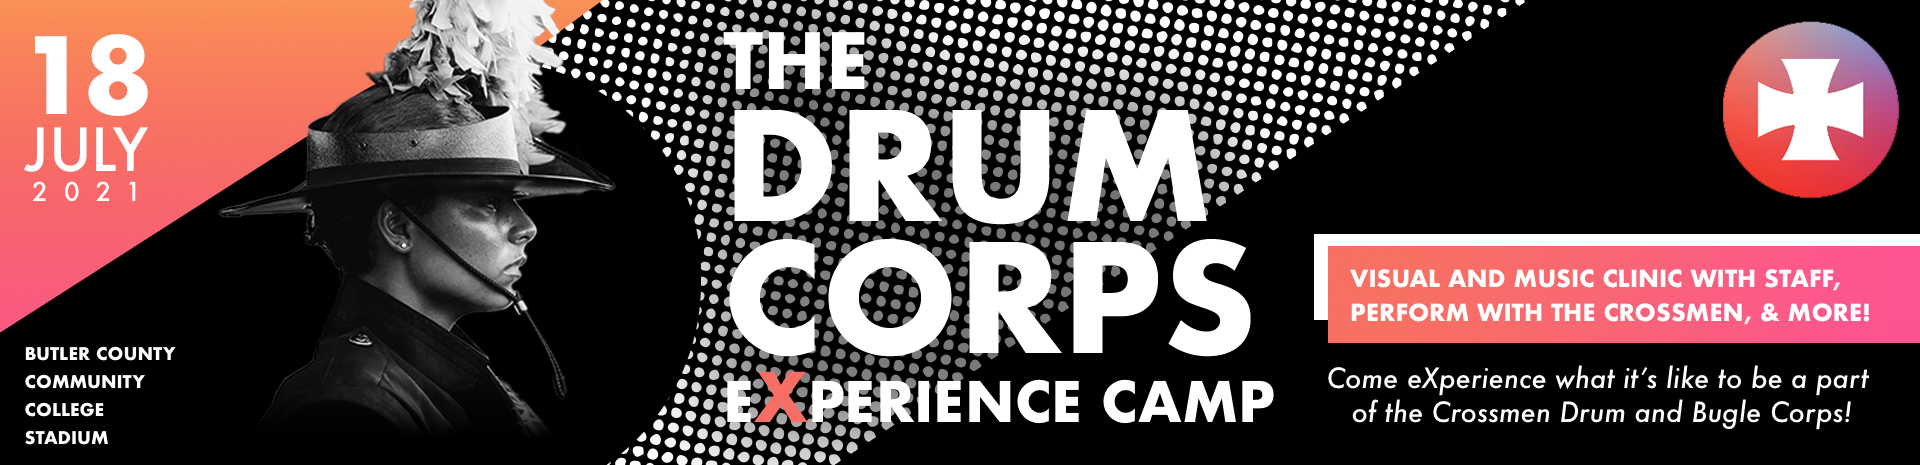 Drum Corps Experience Day